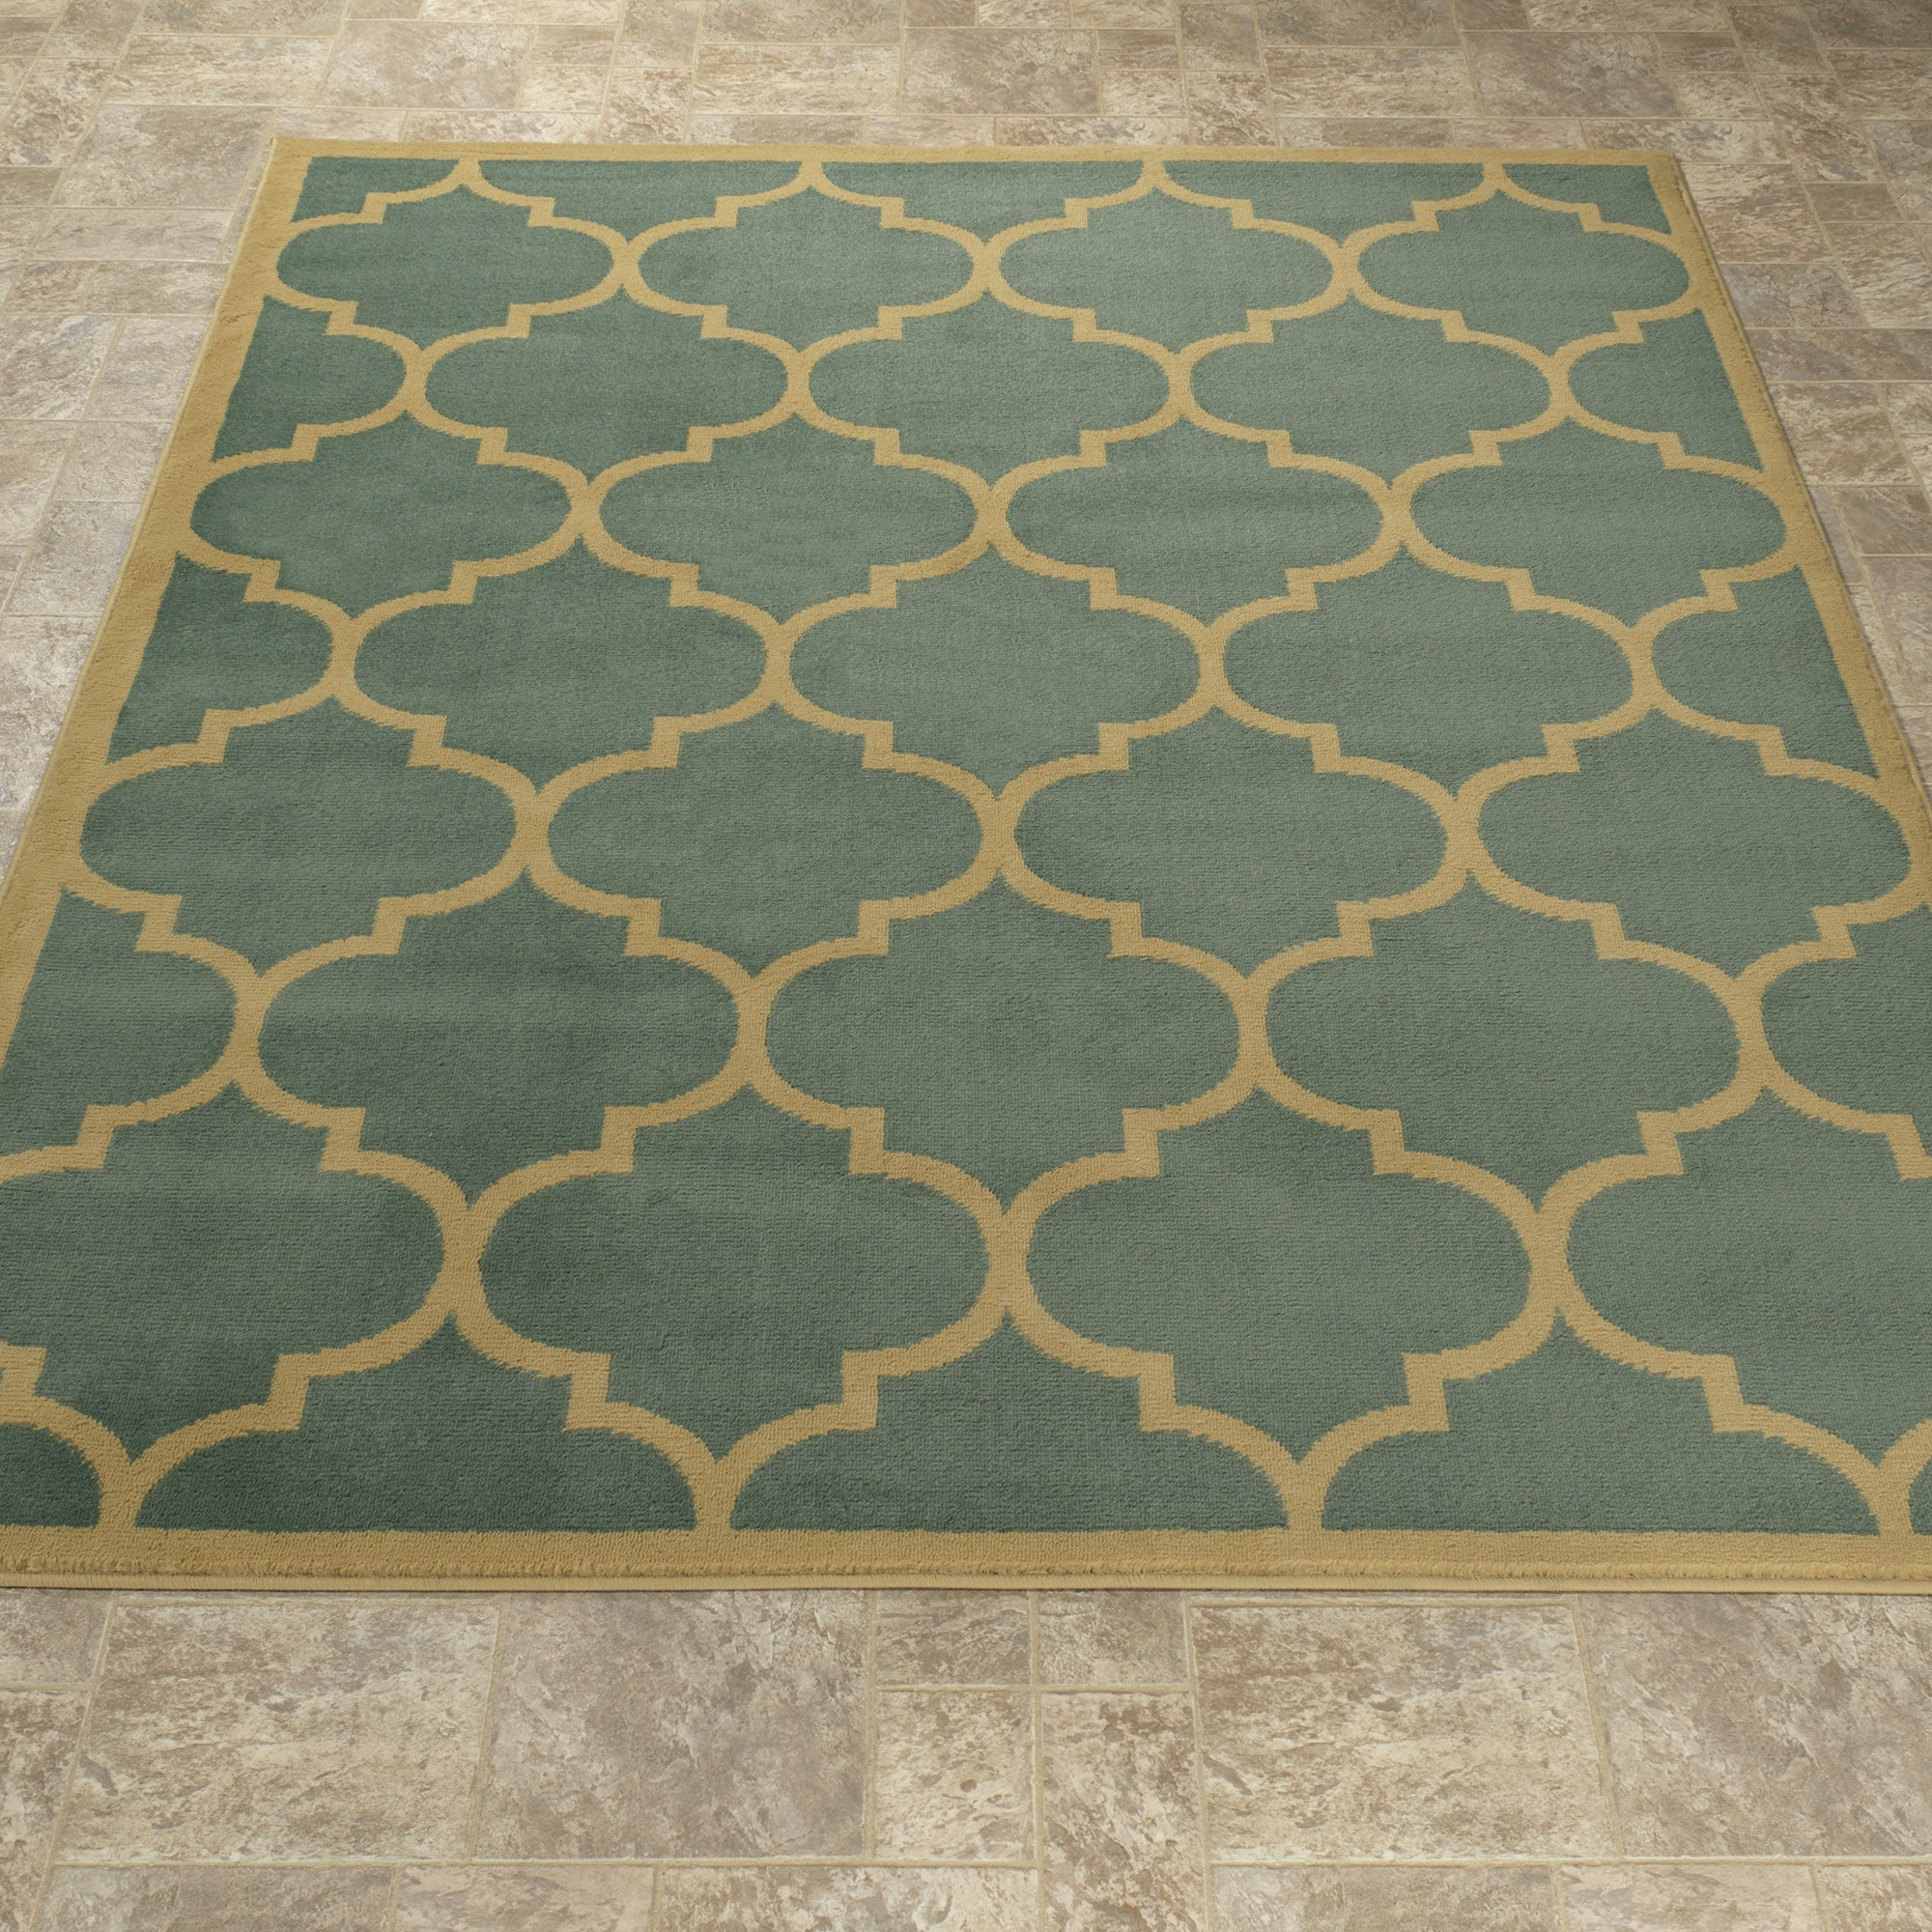 Sweet Home Stores Clifton Collection Moroccan Trellis Design Area Rug, 7'10'' X 9'10'', Seafoam by Sweet Home Stores (Image #3)